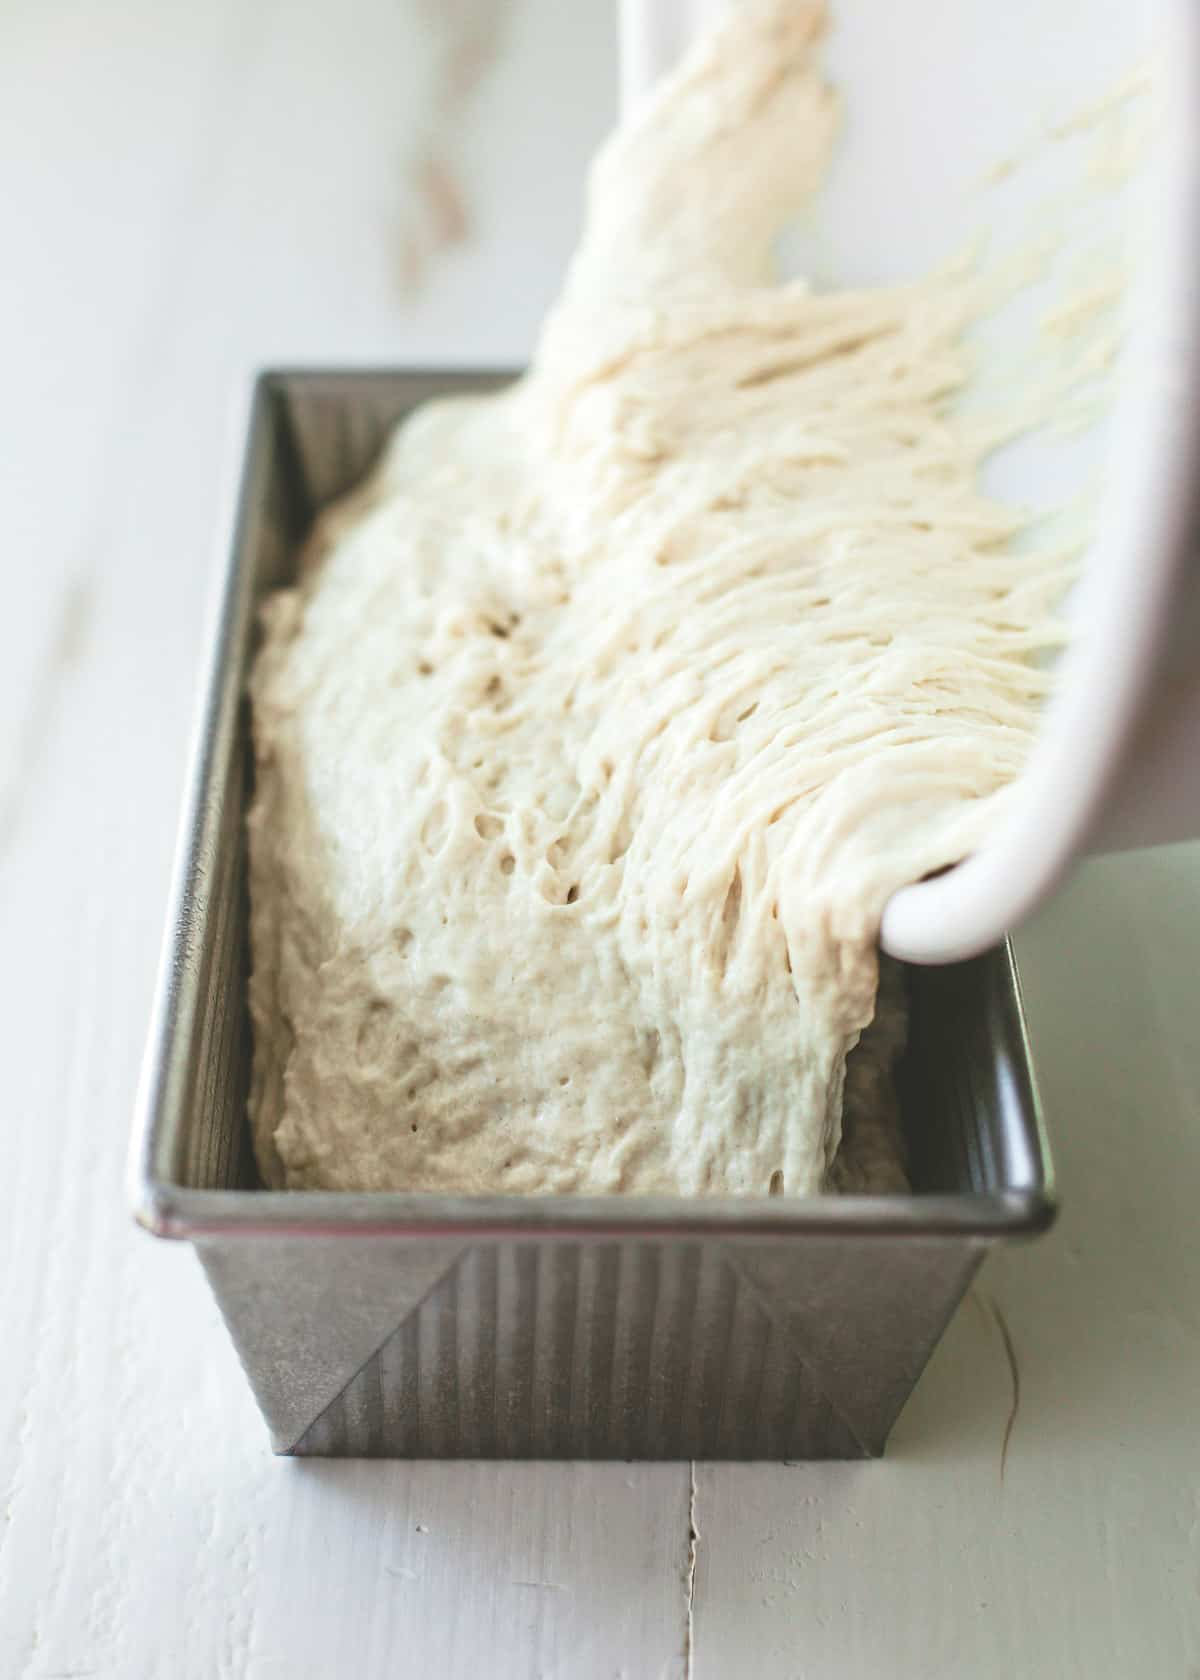 pouring dough into loaf pan